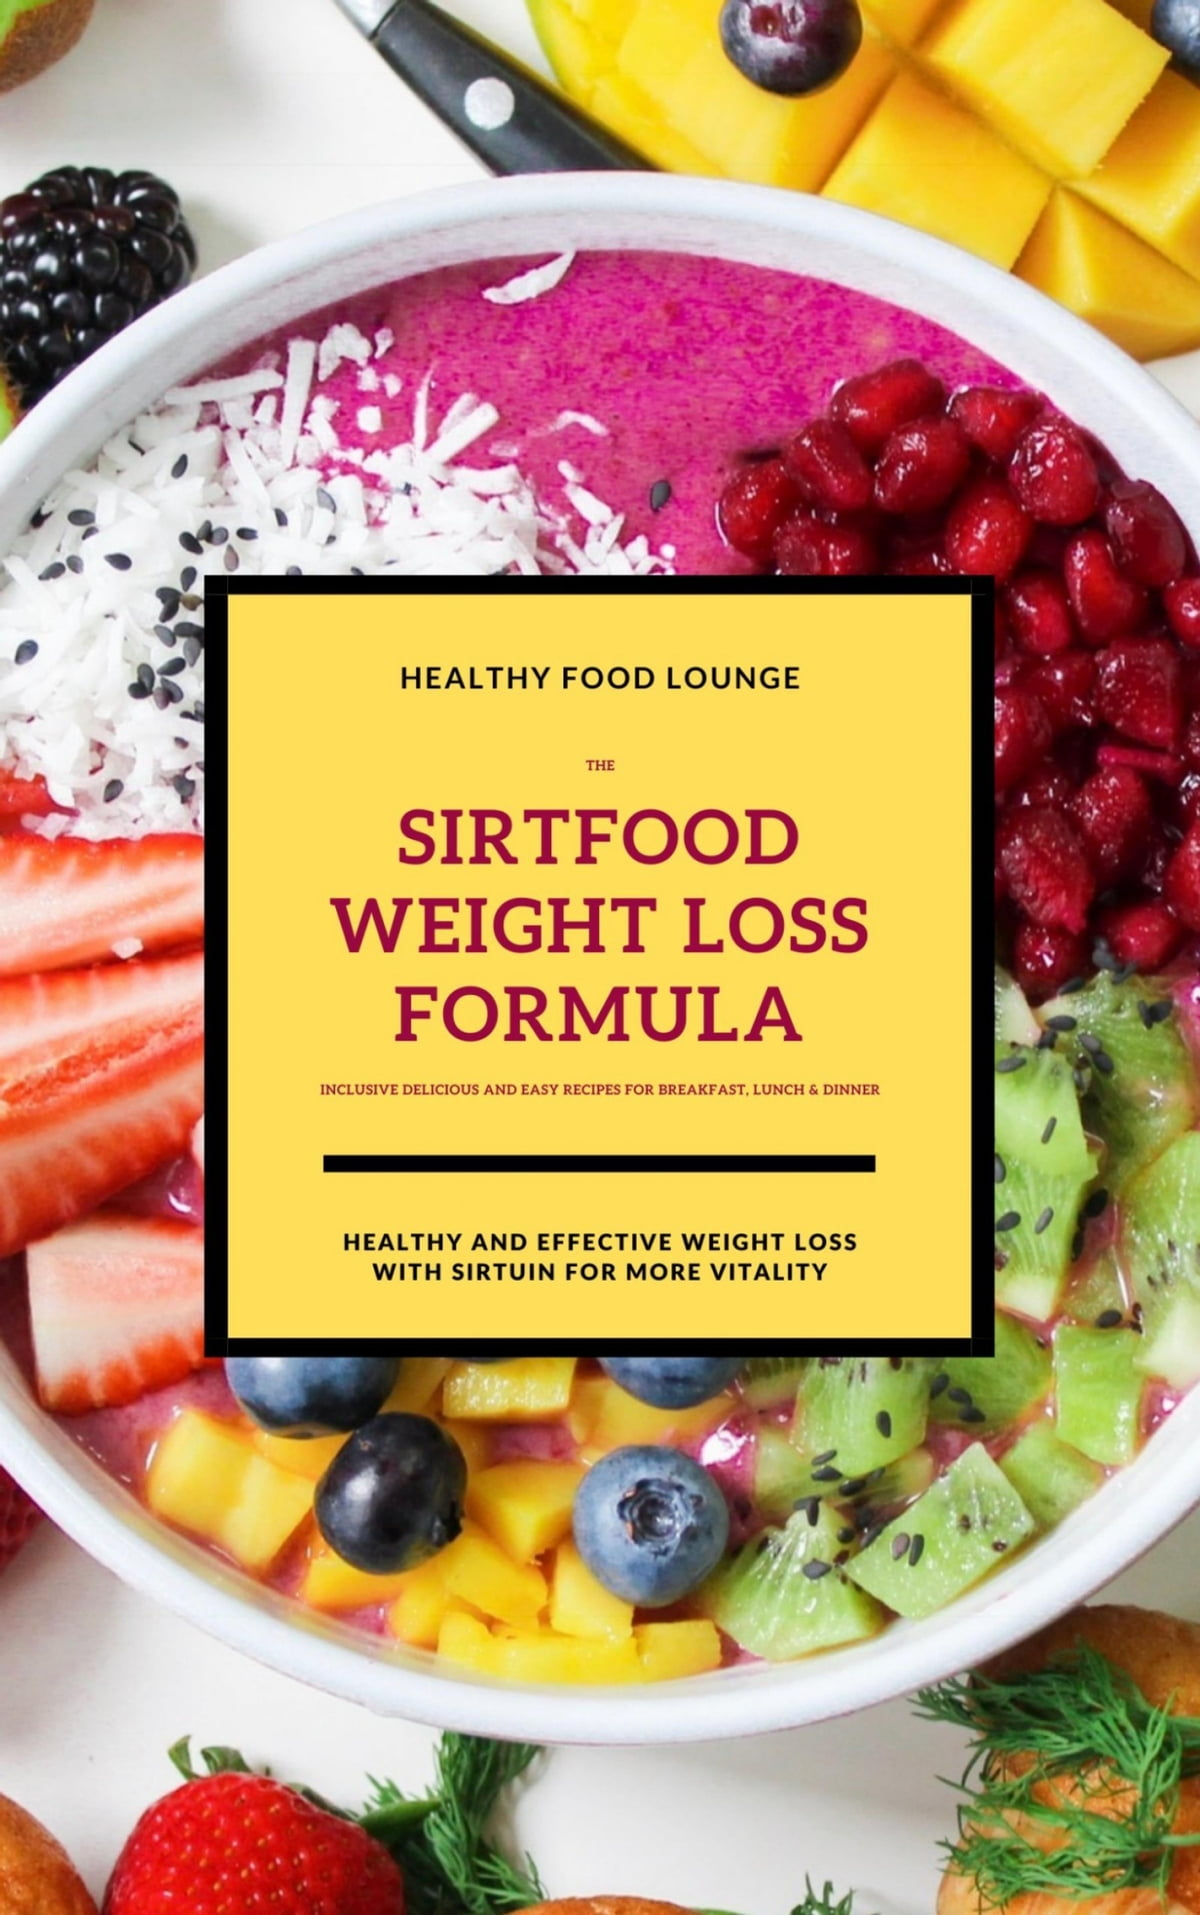 The Sirtfood Weight Loss Formula Healthy And Effective Weight Loss With Sirtuin For More Vitality Inclusive Delicious And Easy Recipes For Breakfast Lunch Dinner Ebook By Healthy Food Lounge 9783752996777